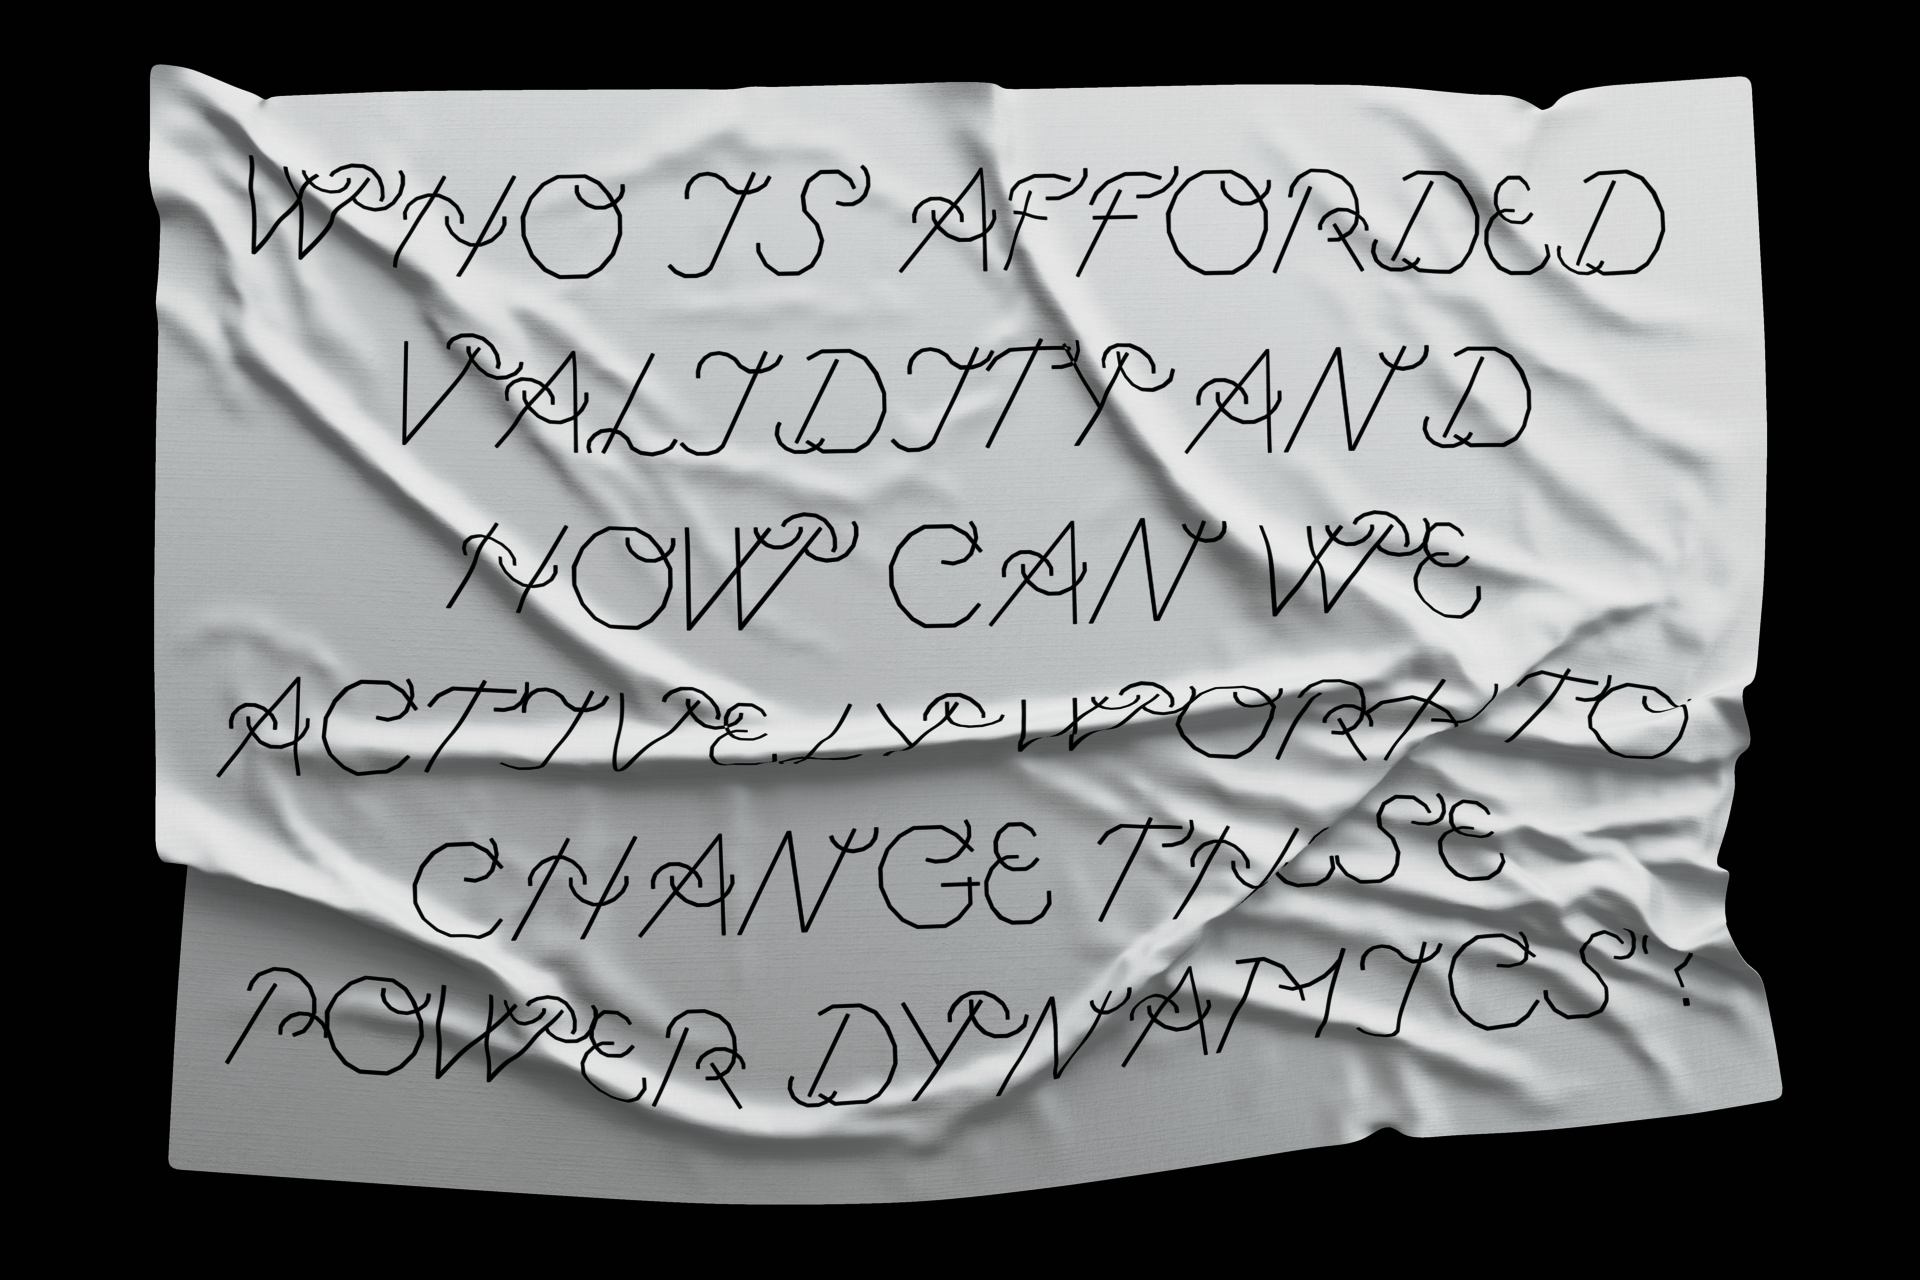 A white fabric with the text 'Who is afforded validity and how can we actively work to change these power dynamics?' in black